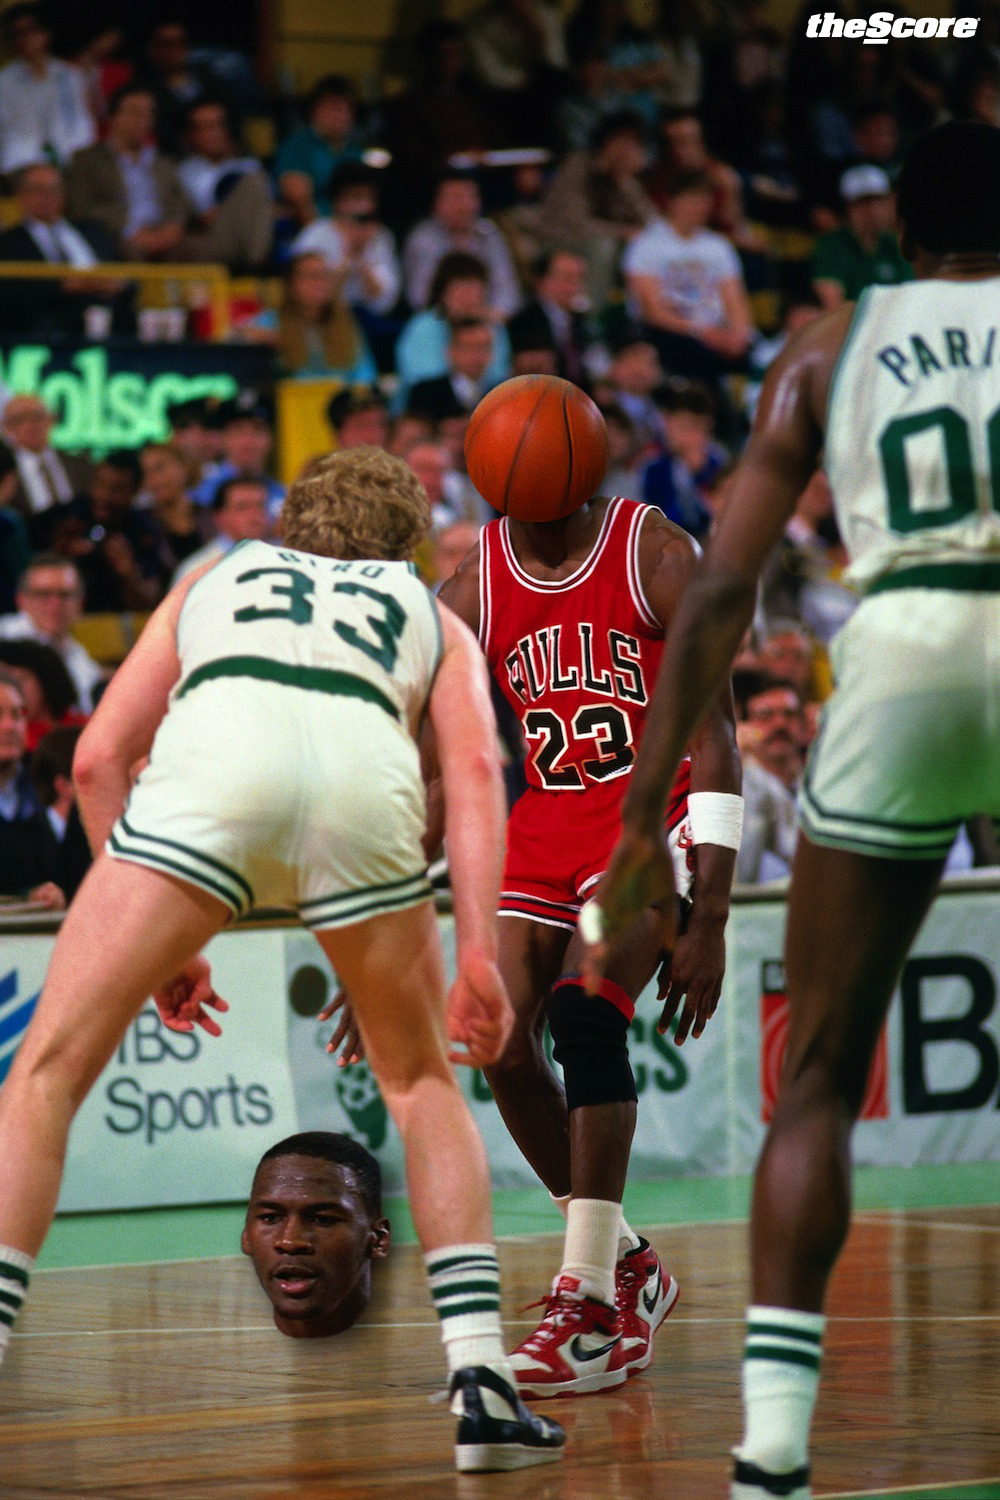 Michael Jordan sees an opening between Larry Bird's legs.